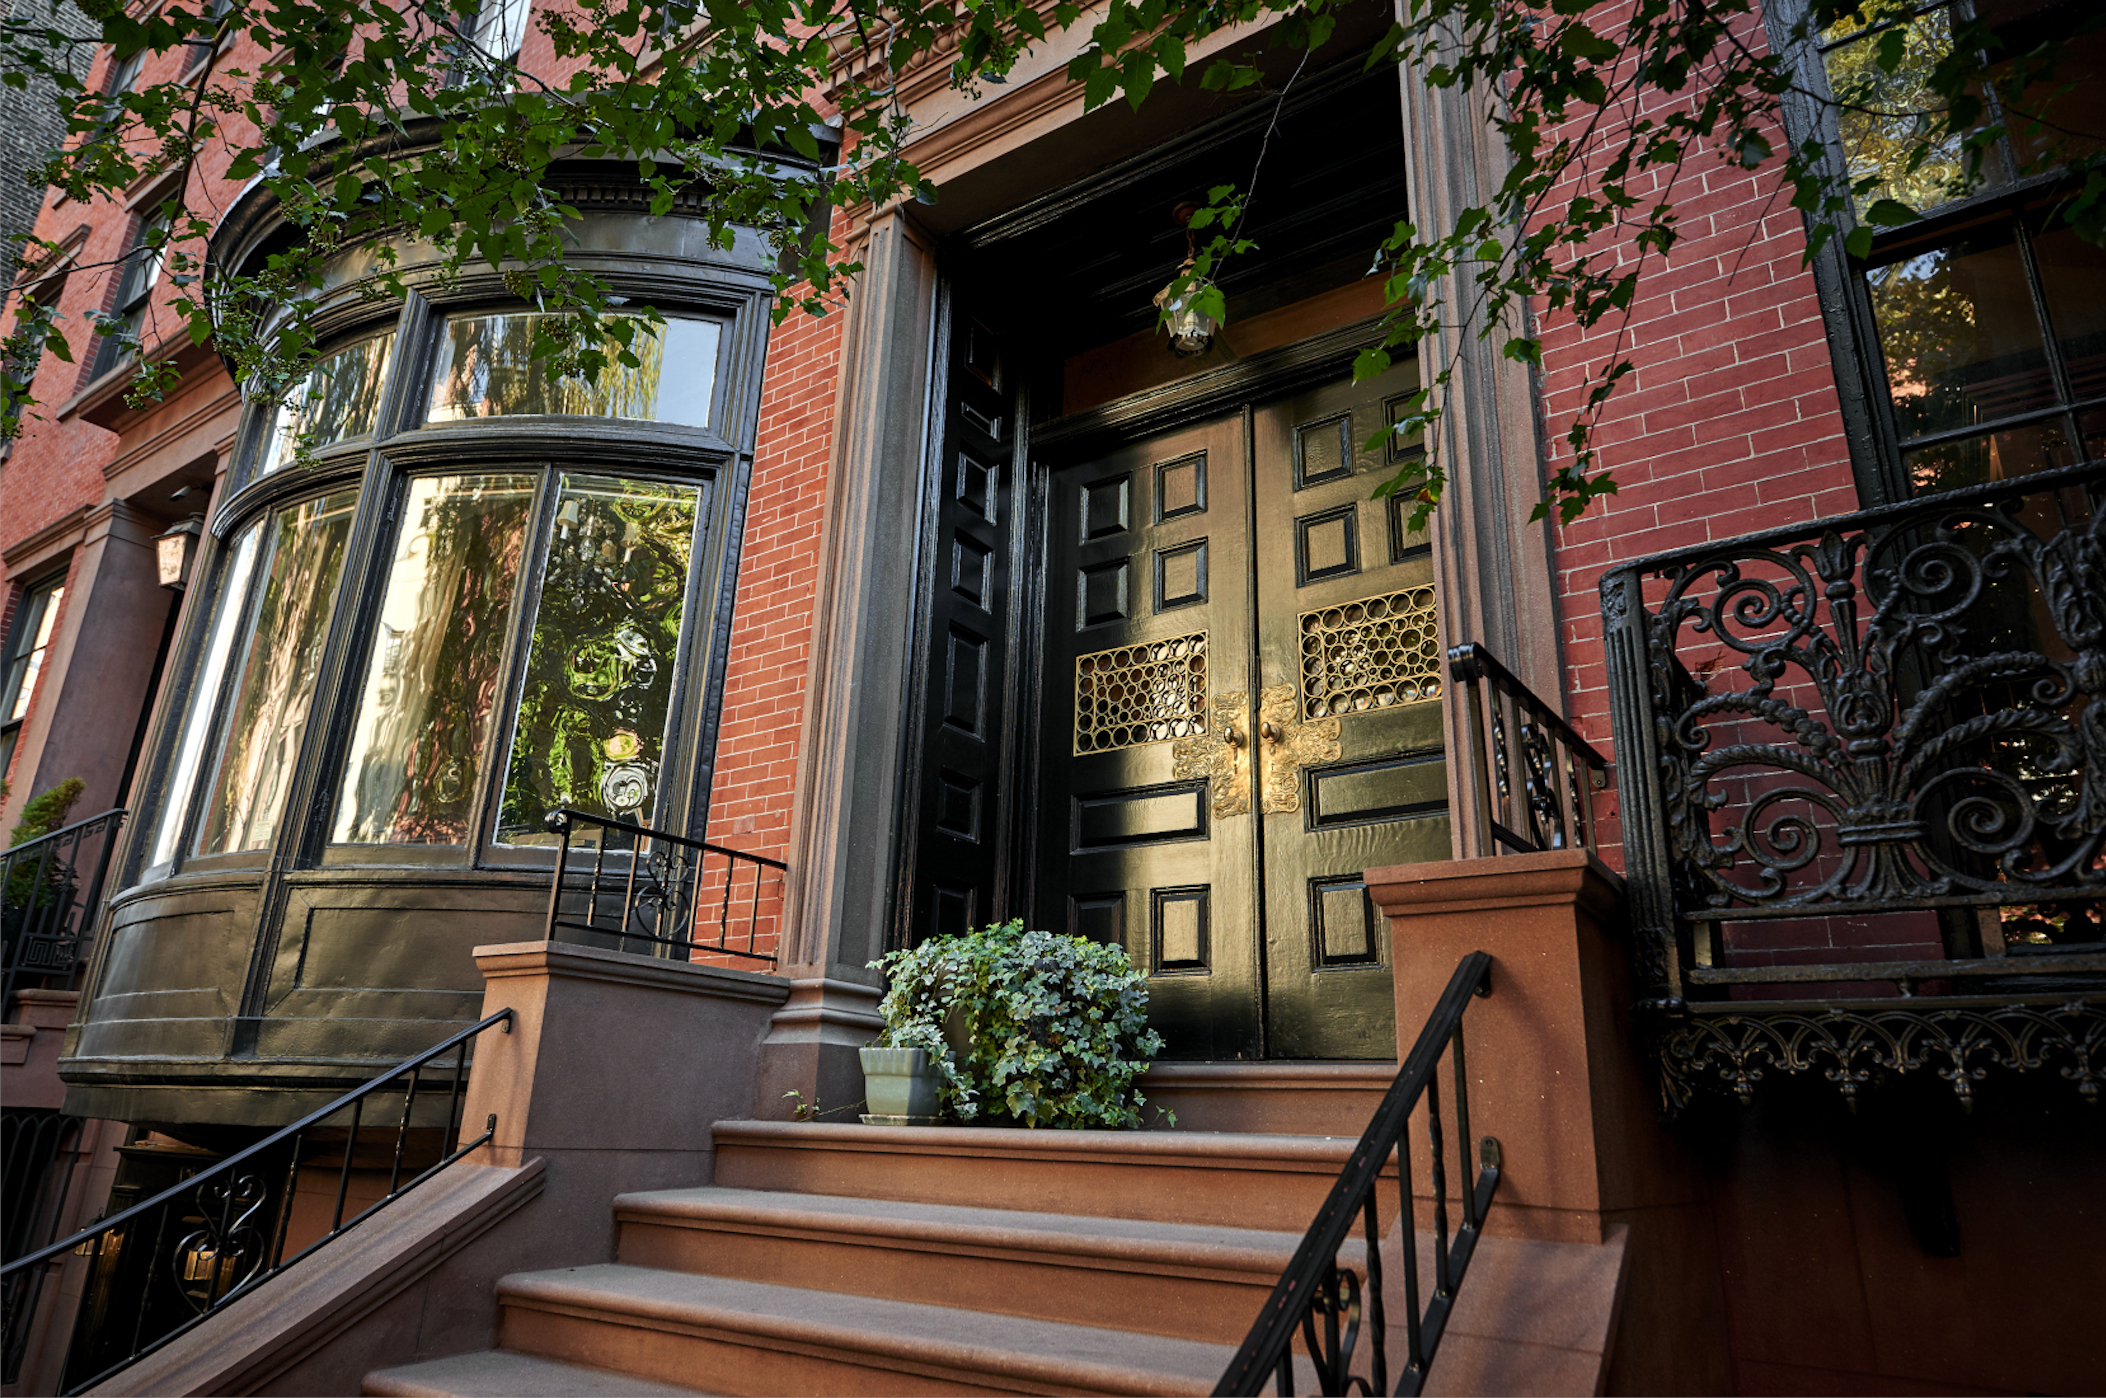 Brownstone Home in Cobble Hill Brooklyn